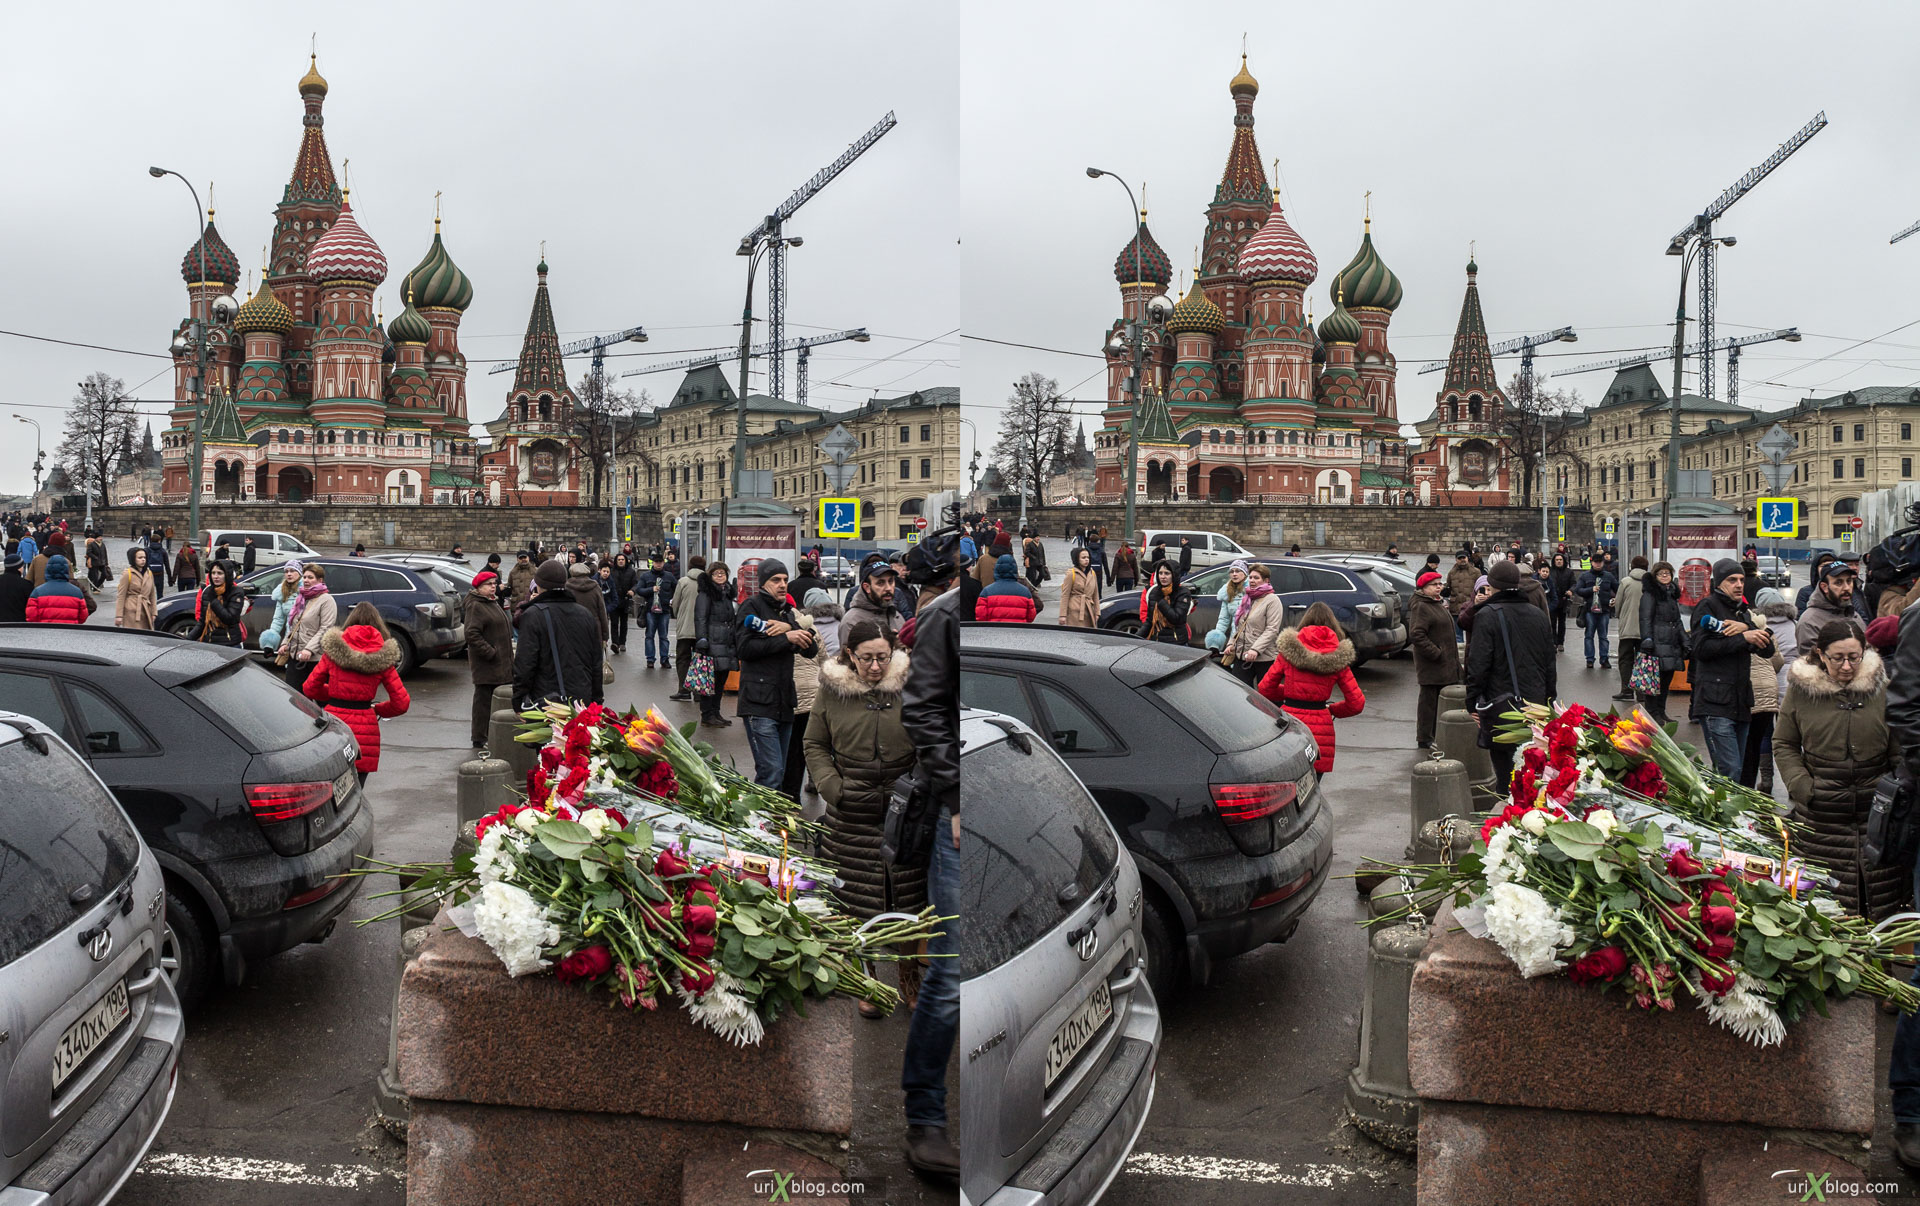 Boris Nemtsov, dead, death, shot to death, Kremlin, Red Square, Moscow, Russia, 3D, stereo pair, cross-eyed, crossview, cross view stereo pair, stereoscopic, 2015